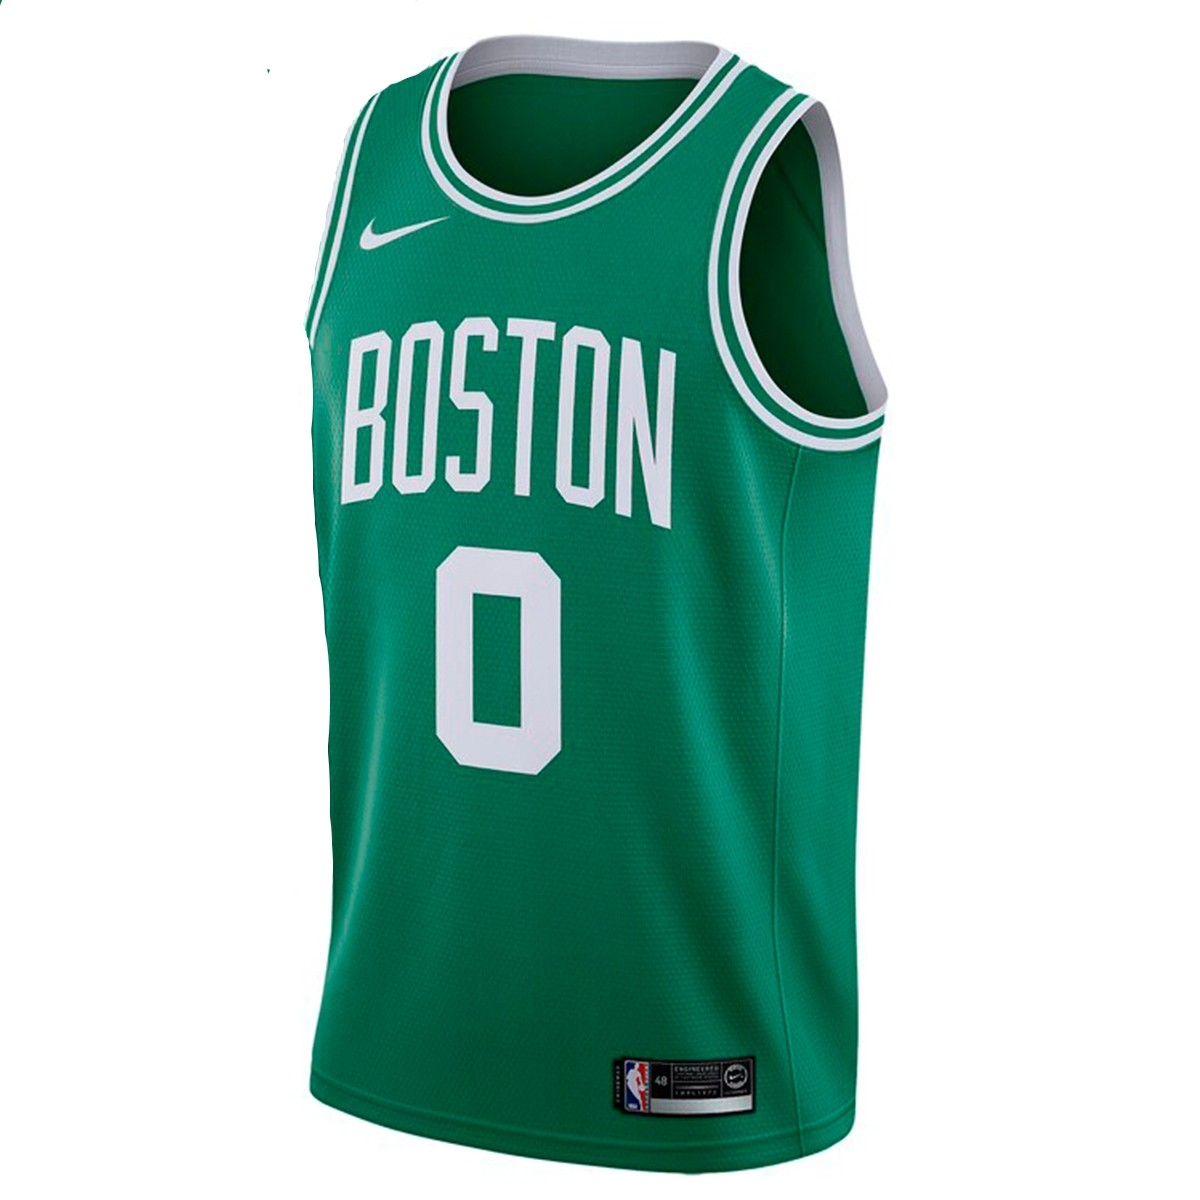 Nike Junior NBA Boston Celtics Swingman Jersey Tatum 'Icon Edition'